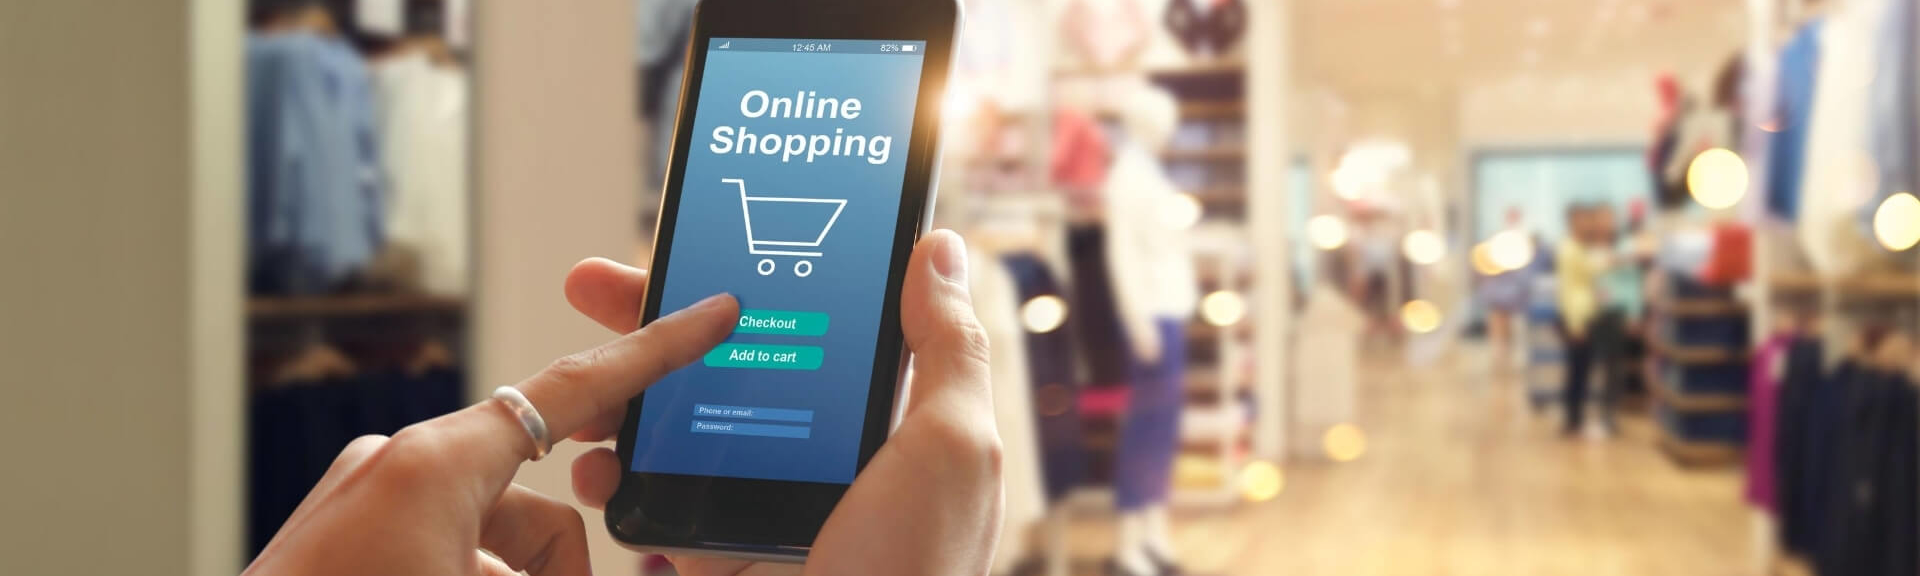 eCommerce store on mobile device